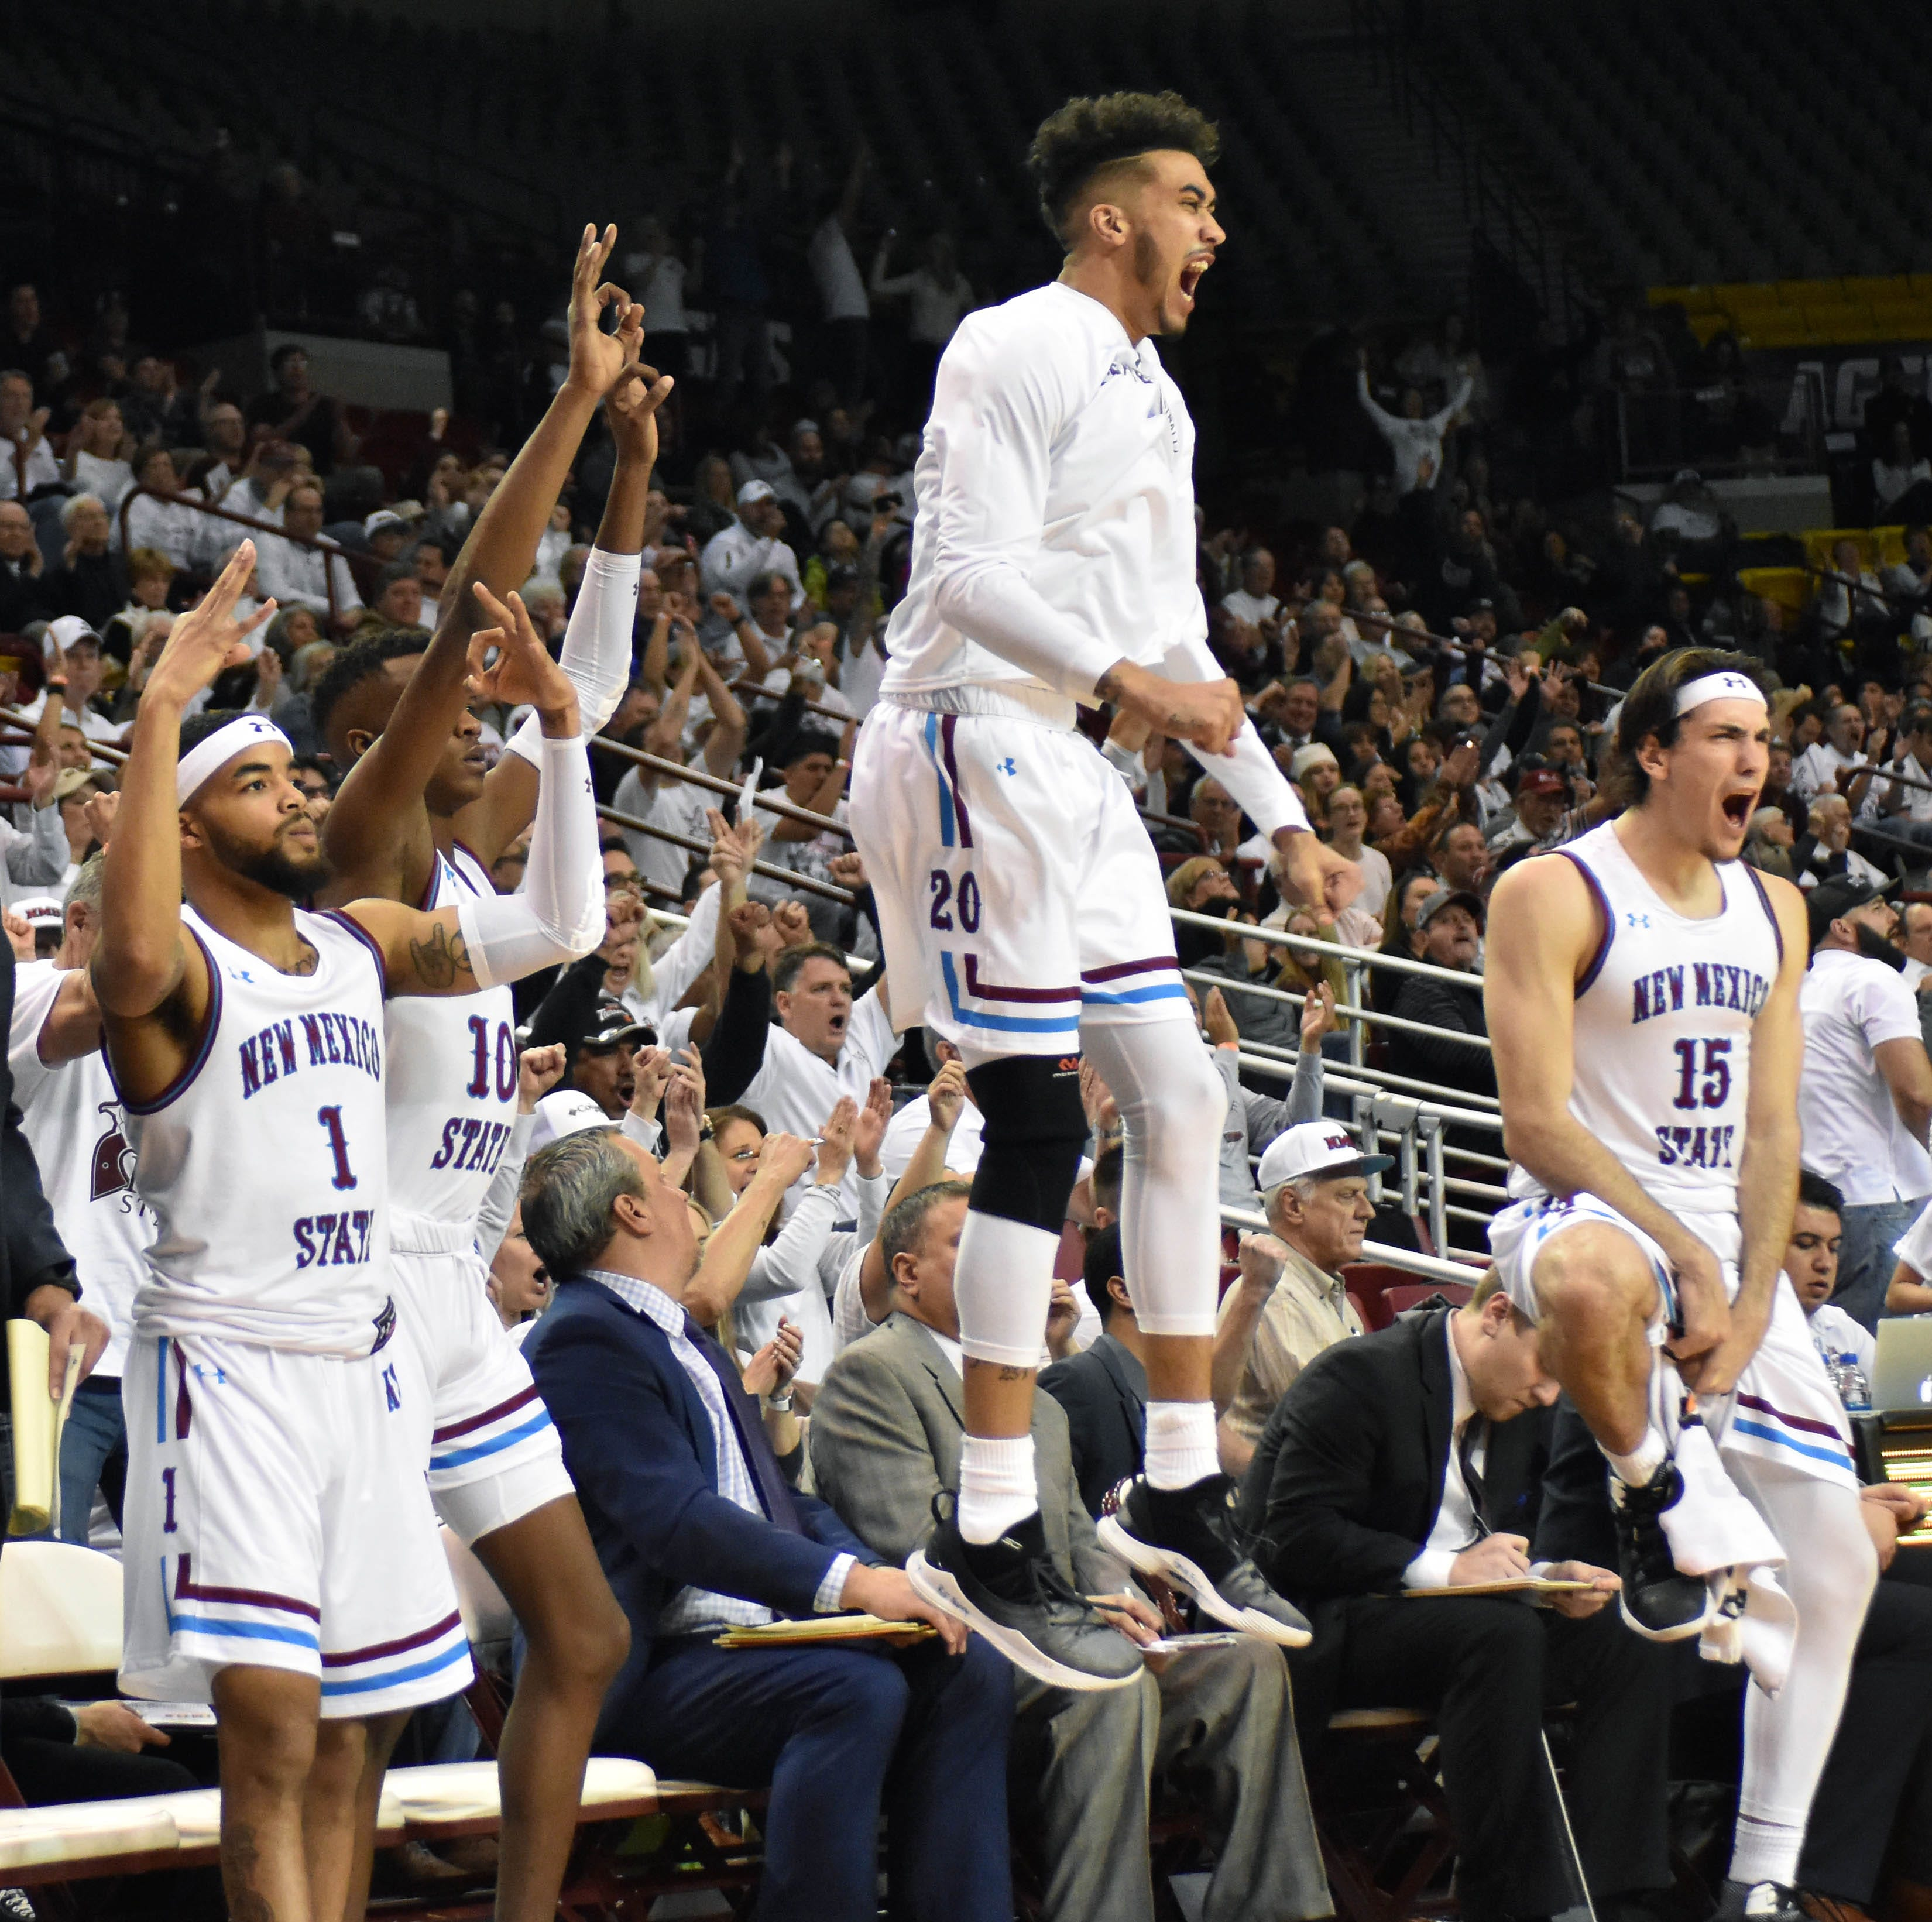 Johnny McCants buzzer beater lifts New Mexico State to victory over Grand Canyon